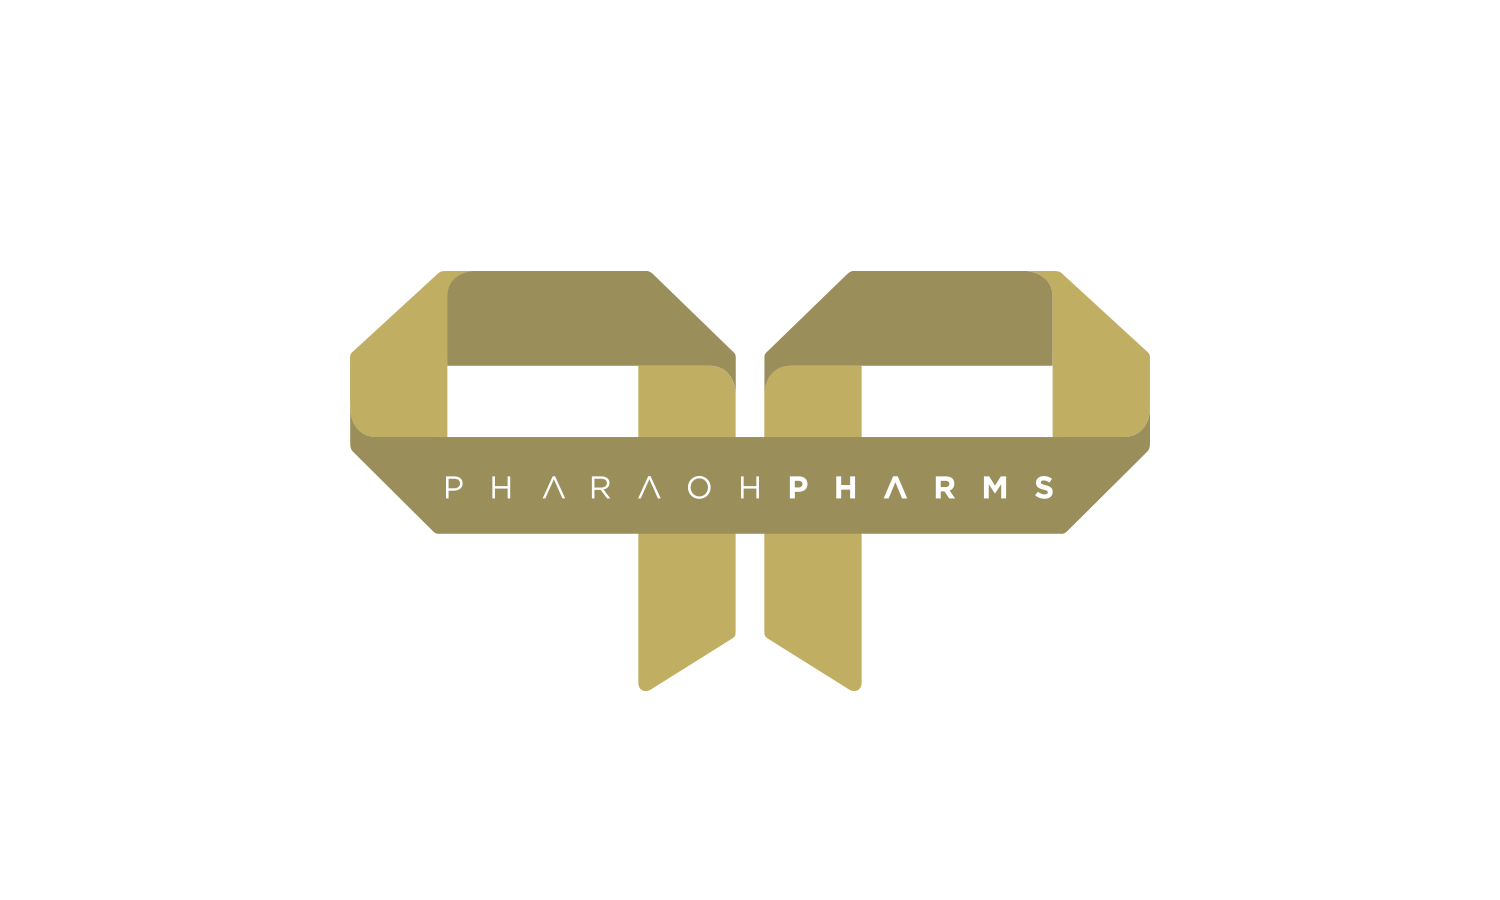 Pharaoh Pharms